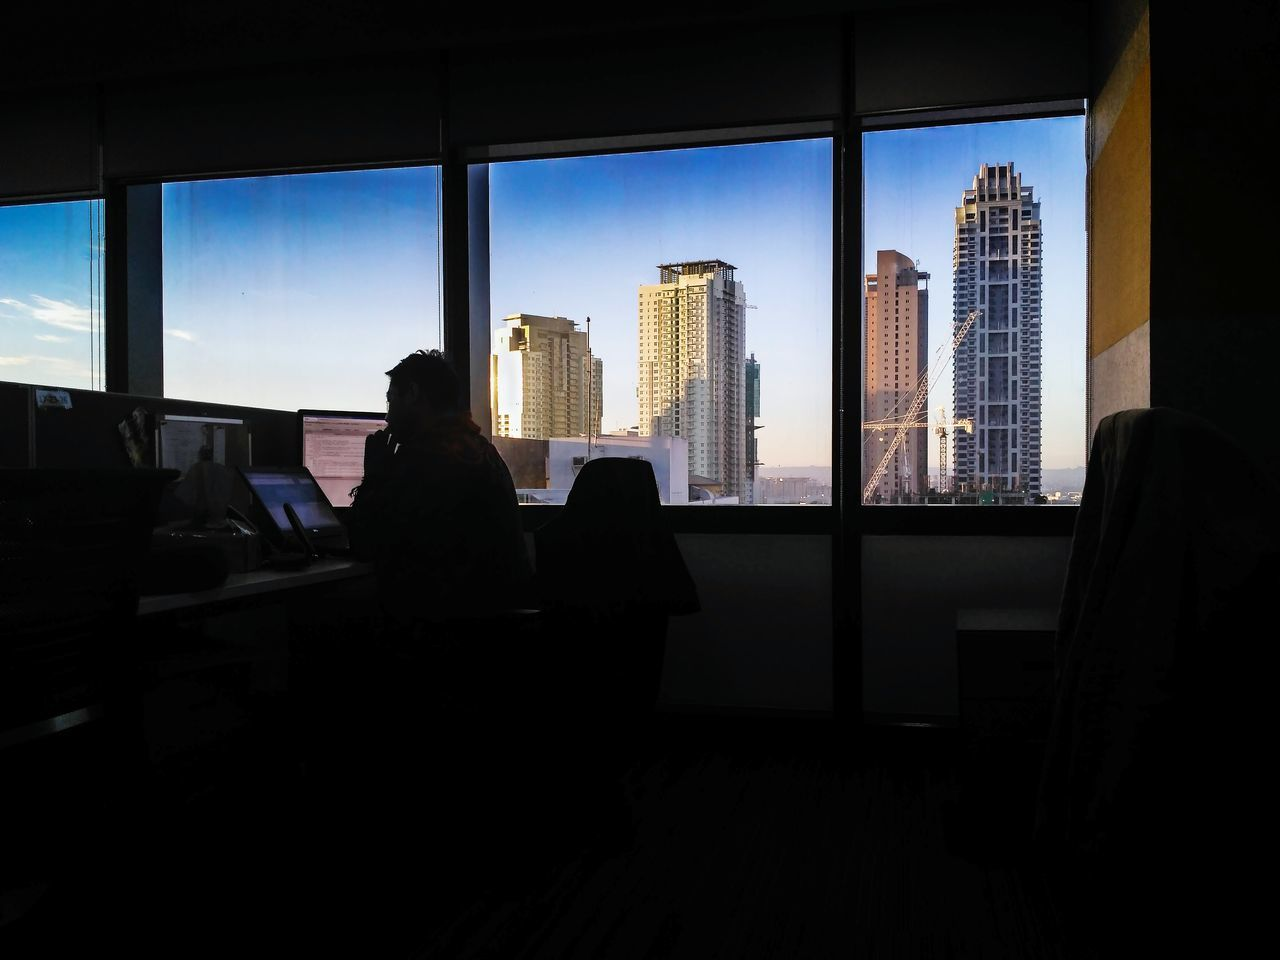 Office mornings. Silhouette Eyeem Philippines LitratongPinoy Officelife City Life Cityscape Skyscrapers Everyday Philippines Mobile Photography Xiaomi Xiaomi Redmi 3 Pro